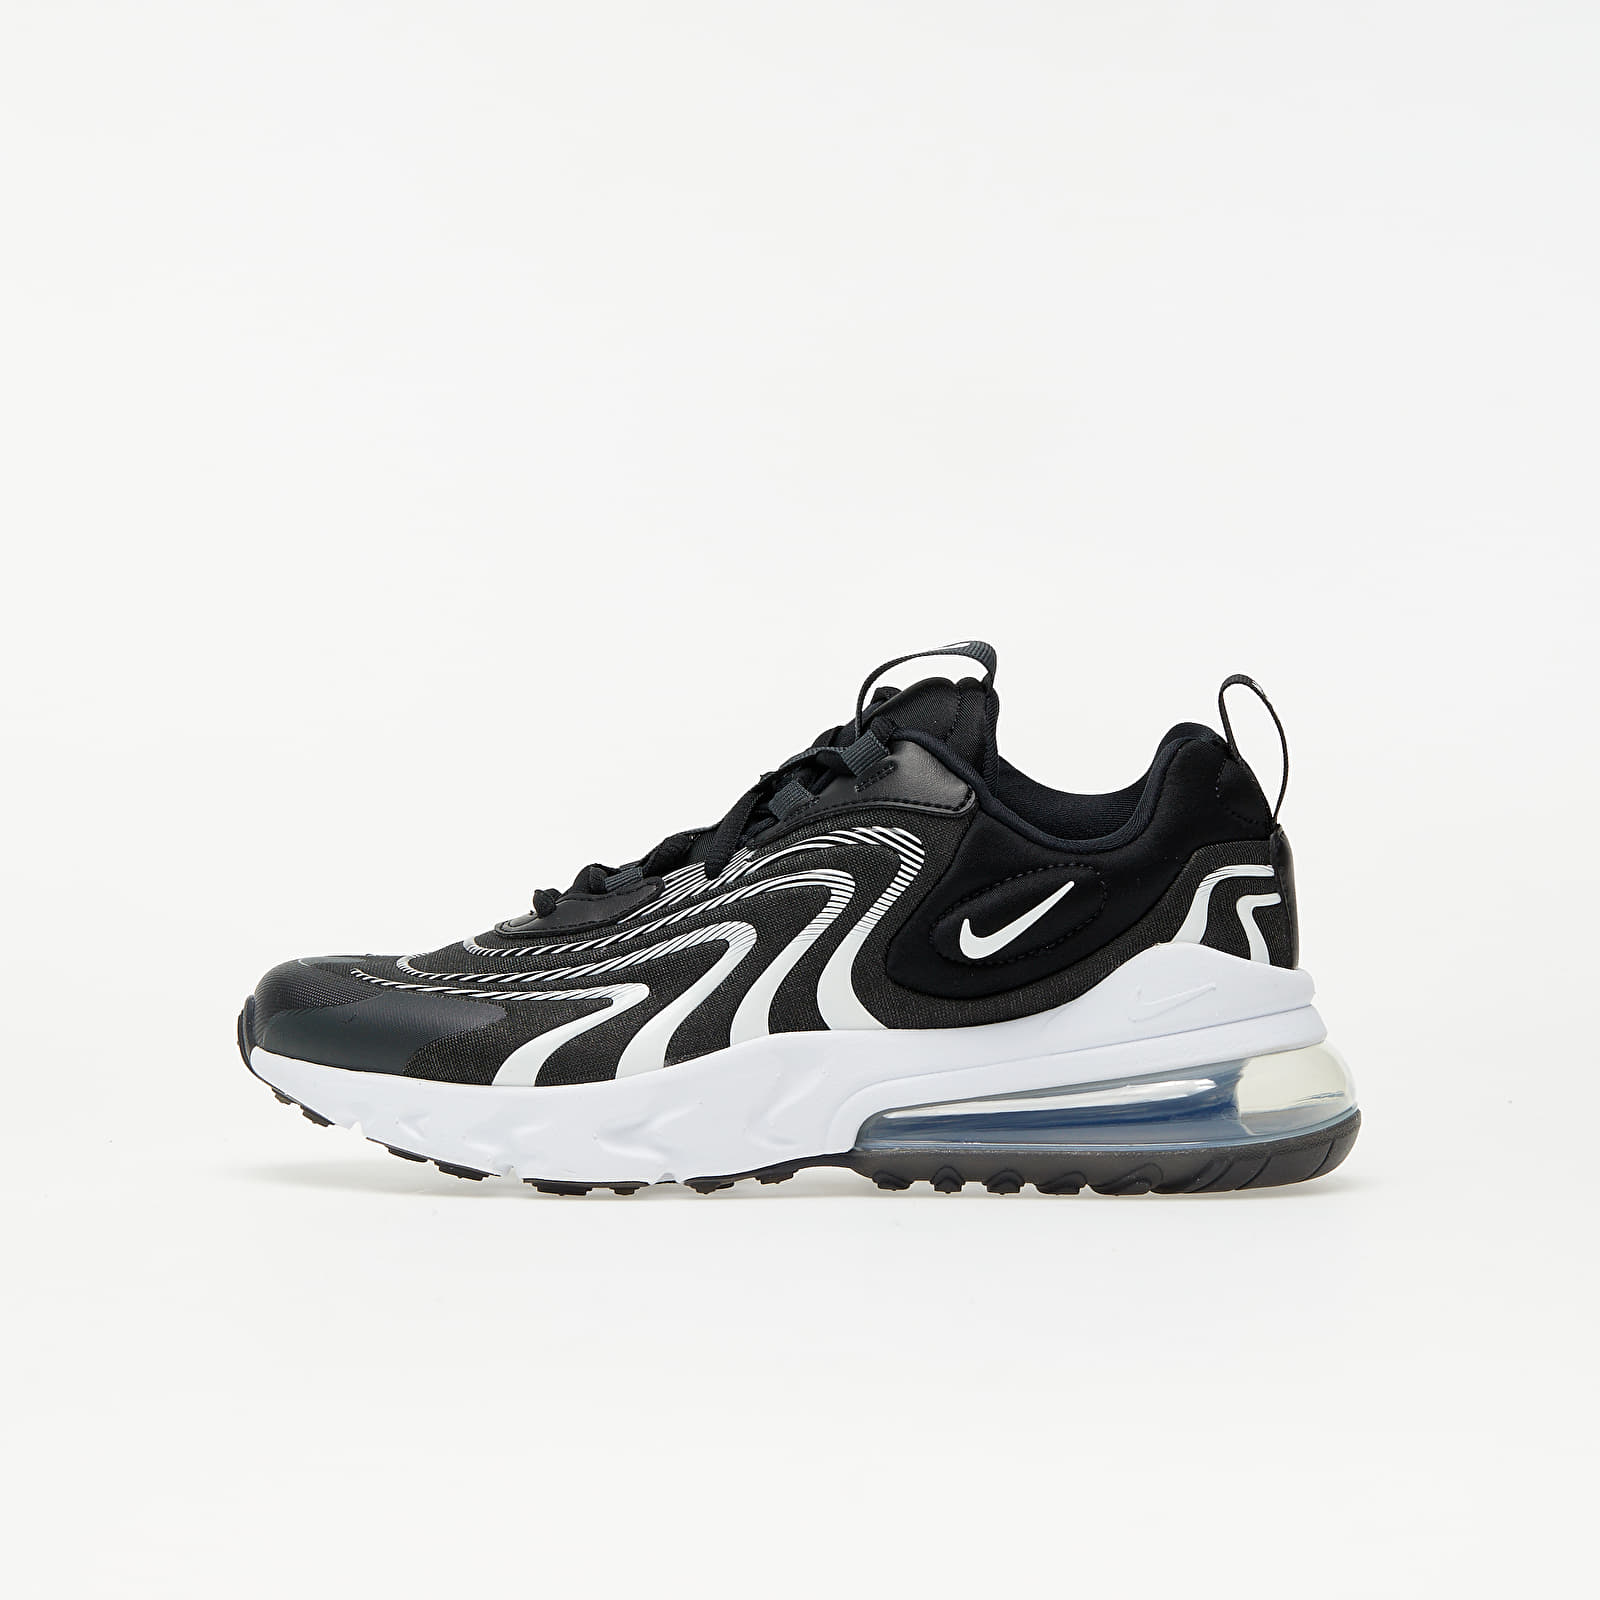 Nike Air Max 270 React ENG (GS) Black/ White-Dk Smoke Grey-Wolf Grey EUR 37.5